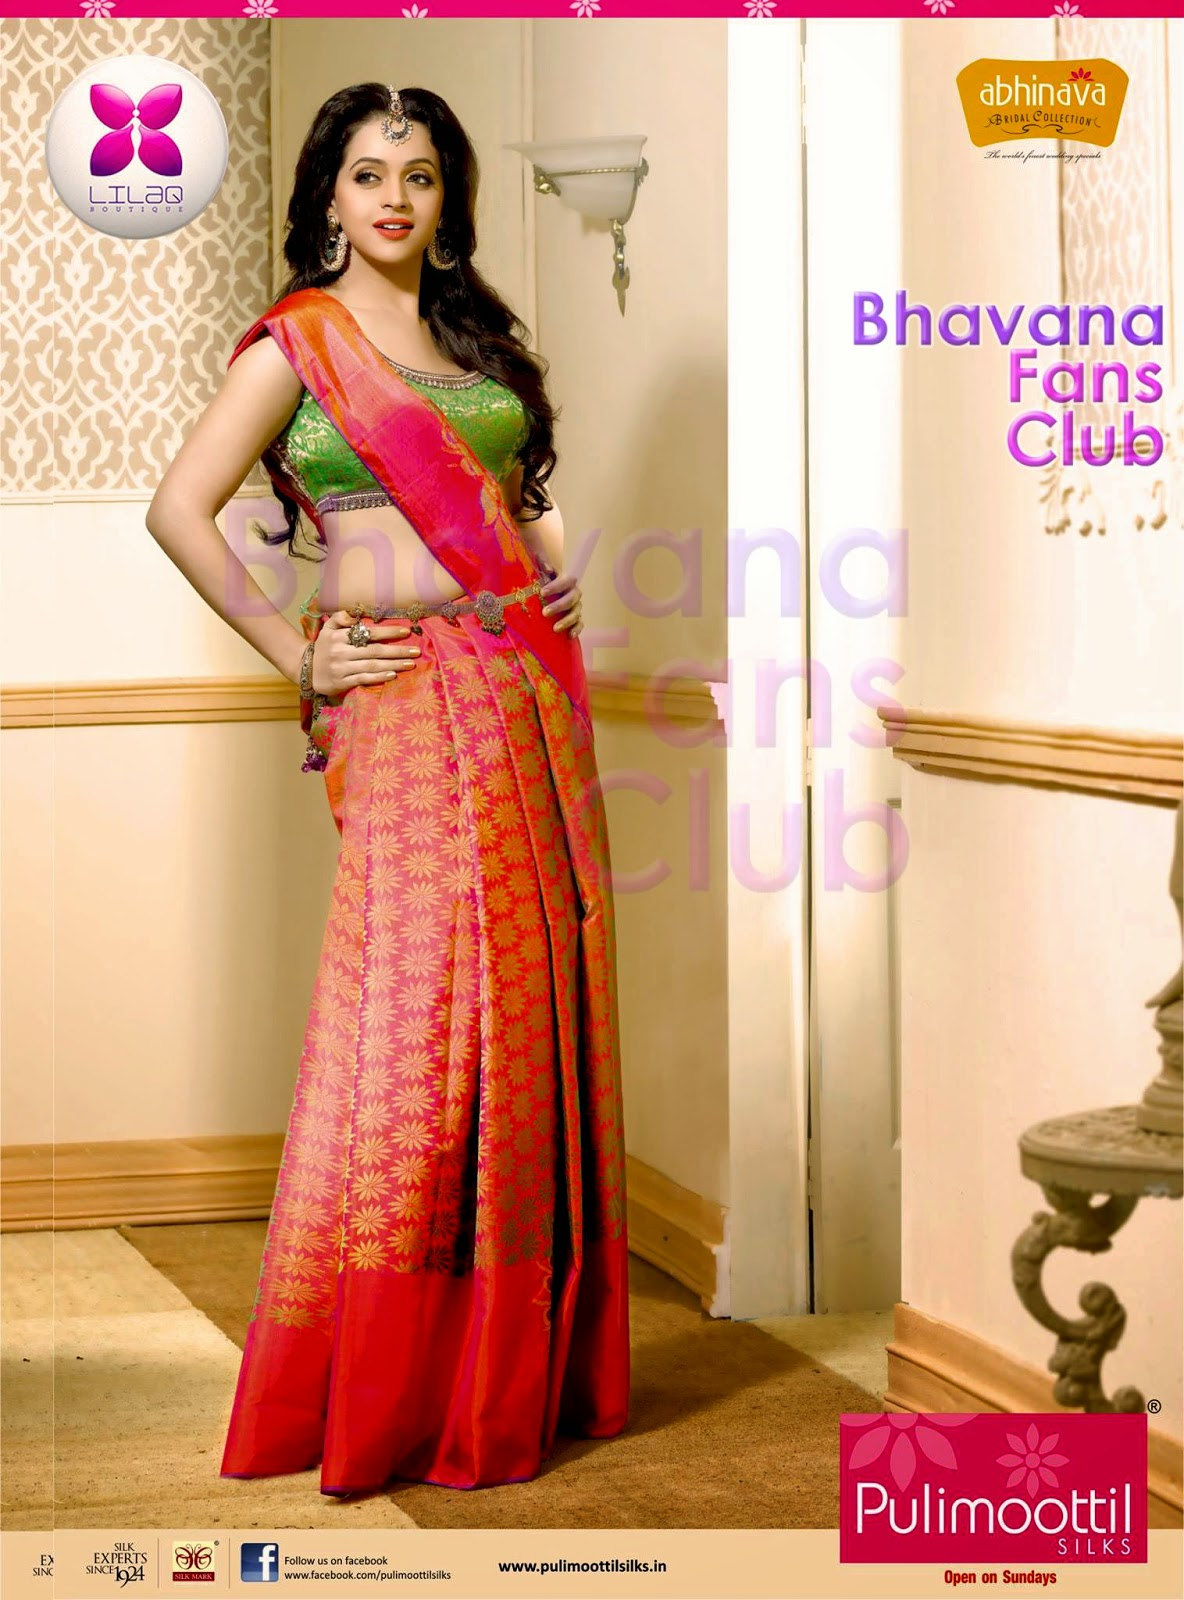 New pulimoottil silks advertisement actress bhavana fans club posted by smart blogger thecheapjerseys Gallery